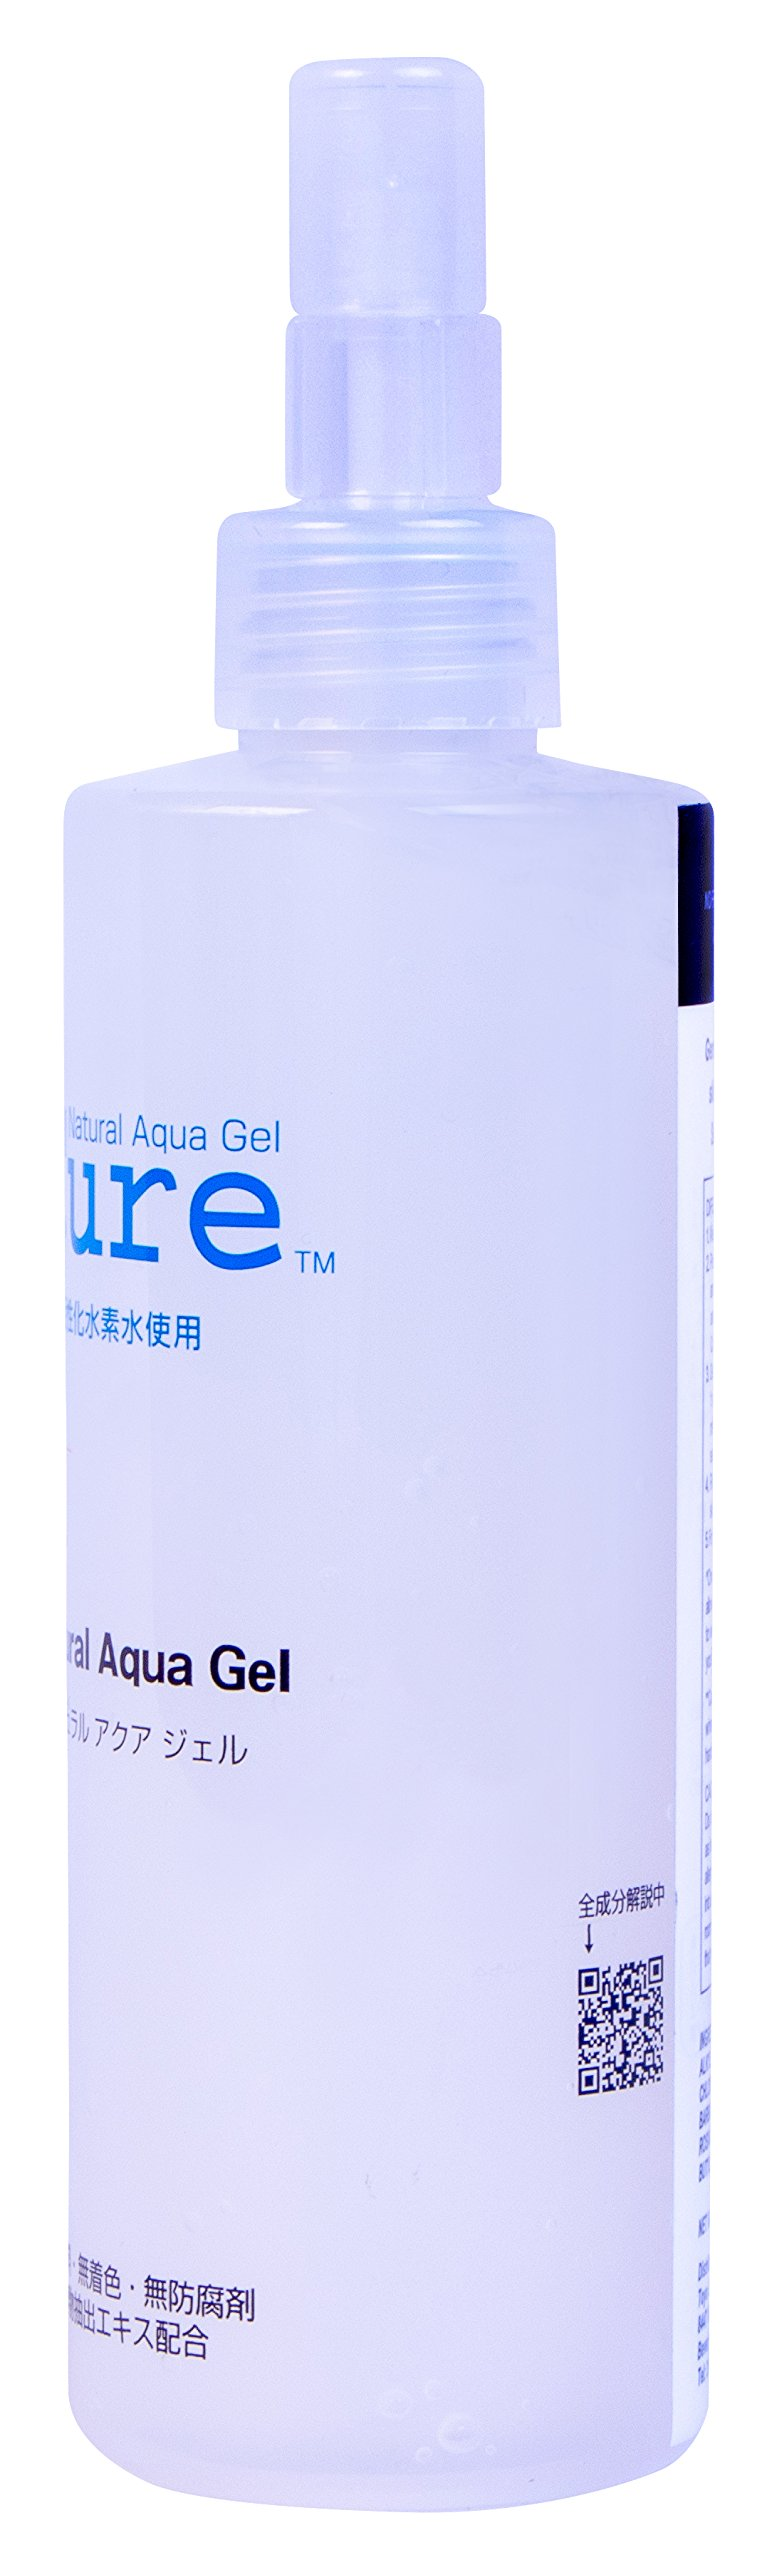 TOYO Cure Natural Aqua Gel - Hydrogen Activated Water Skin Exfoliator Suitable for All Skin Types (8.5 Ounce / 250 Milliliter) by NATURAL AQUA GEL CURE (Image #2)